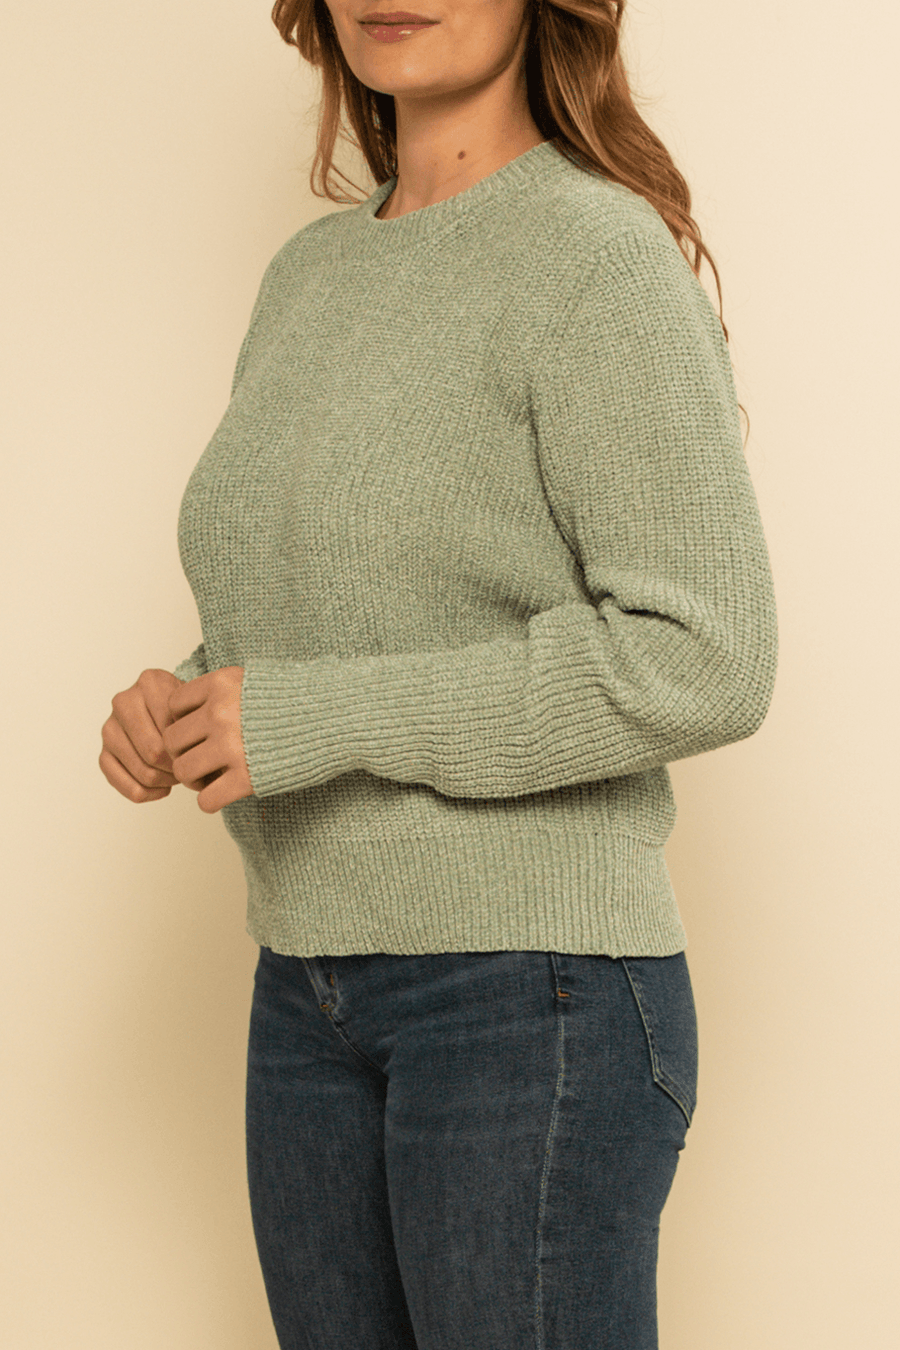 Sun Valley Sweater - Sage - Shore